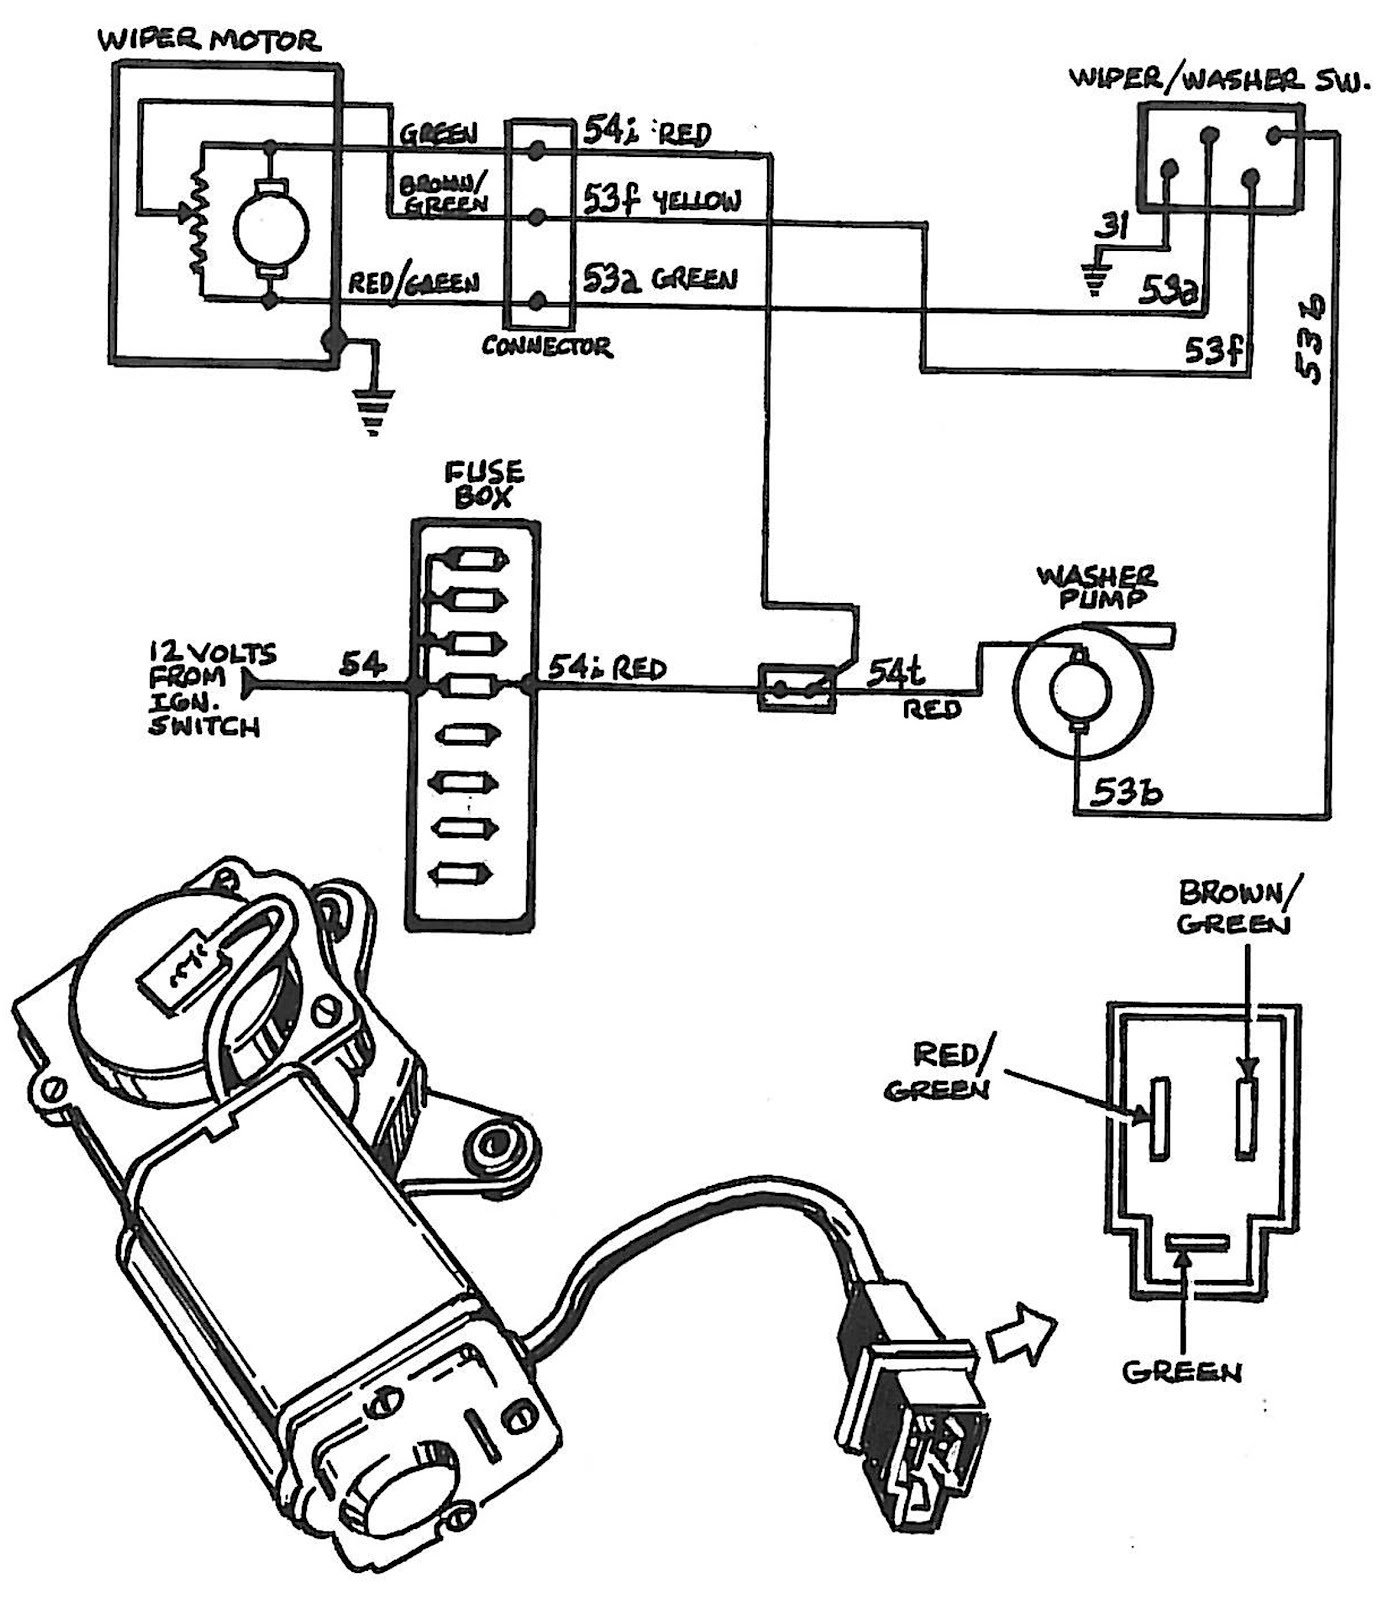 chevy windshield wiper motor wiring diagram CgTTPww vetus wiper motor wiring diagram how does a wiper motor work  at gsmportal.co